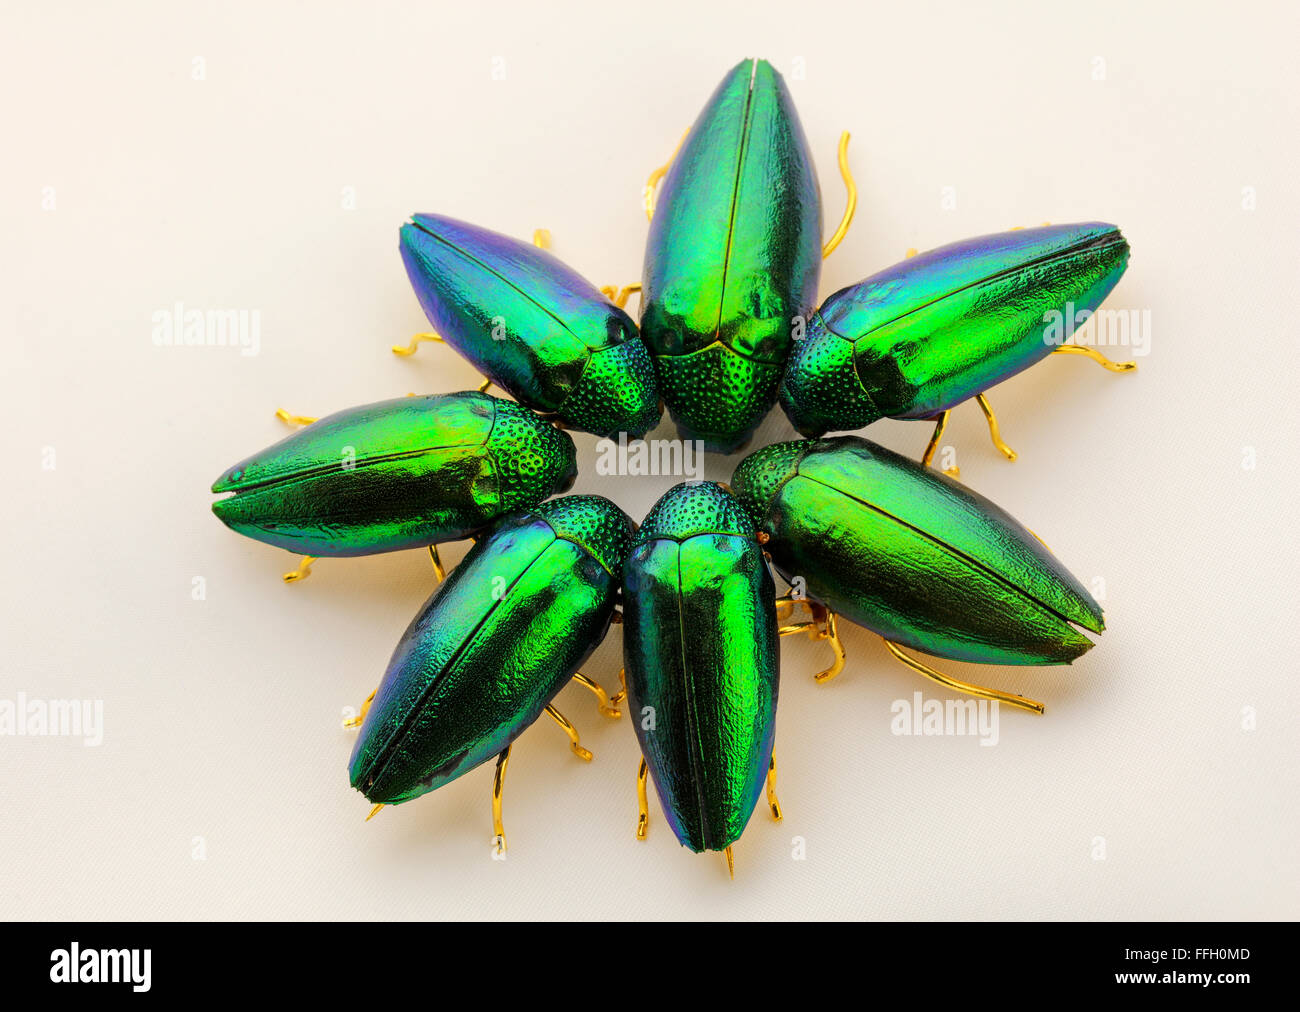 Iridescent Emerald green jewel beetles - Stock Image